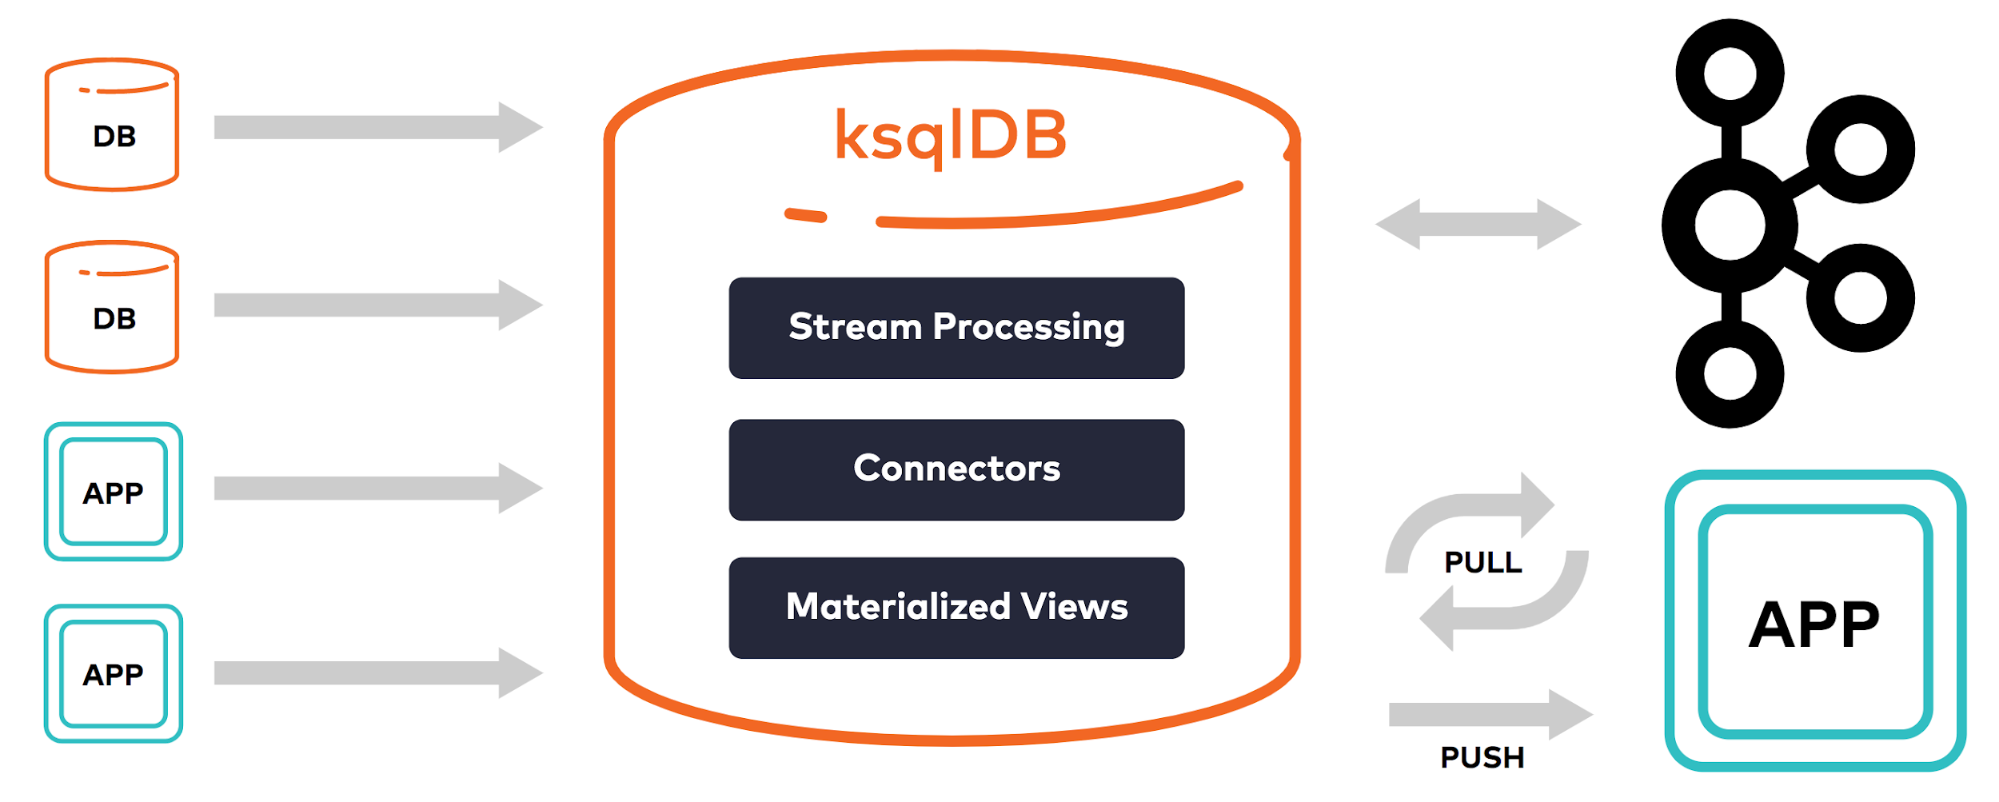 Database | App | ksqlDB (Stream Processing, Connectors, Materialized Views) | Kafka | App